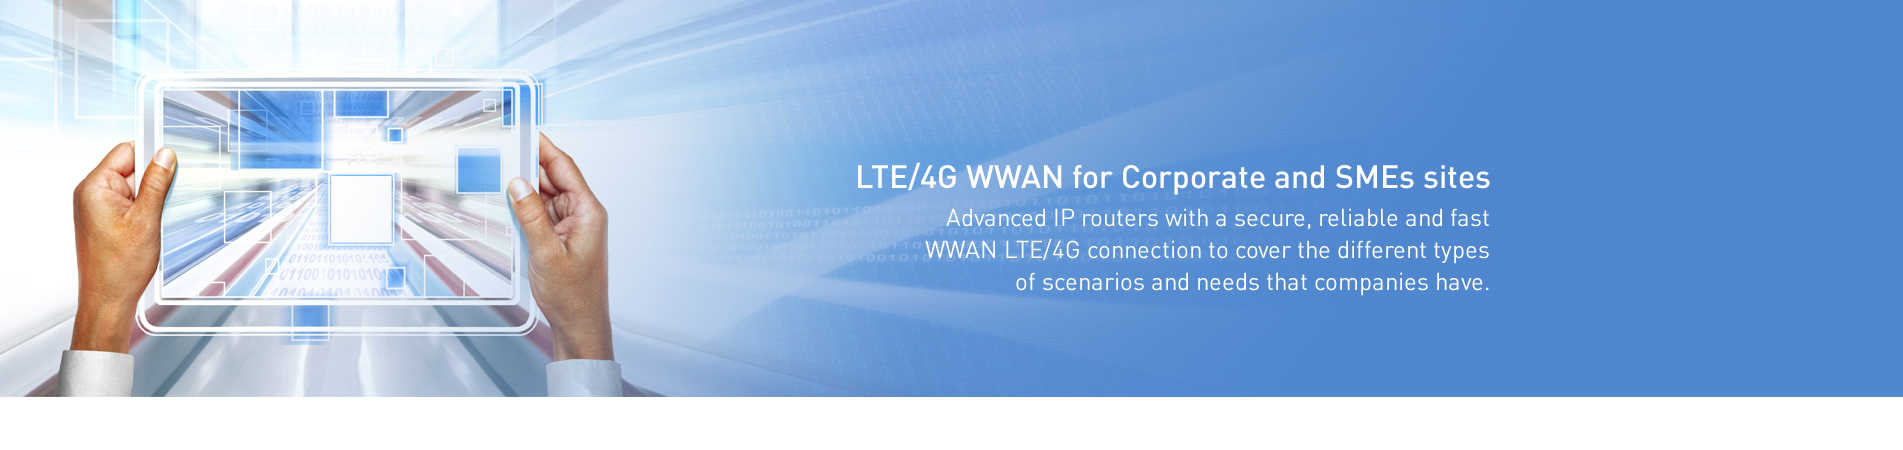 3G/4G Wi-Fi Router  4G Wireless Router Mainline/Resilience